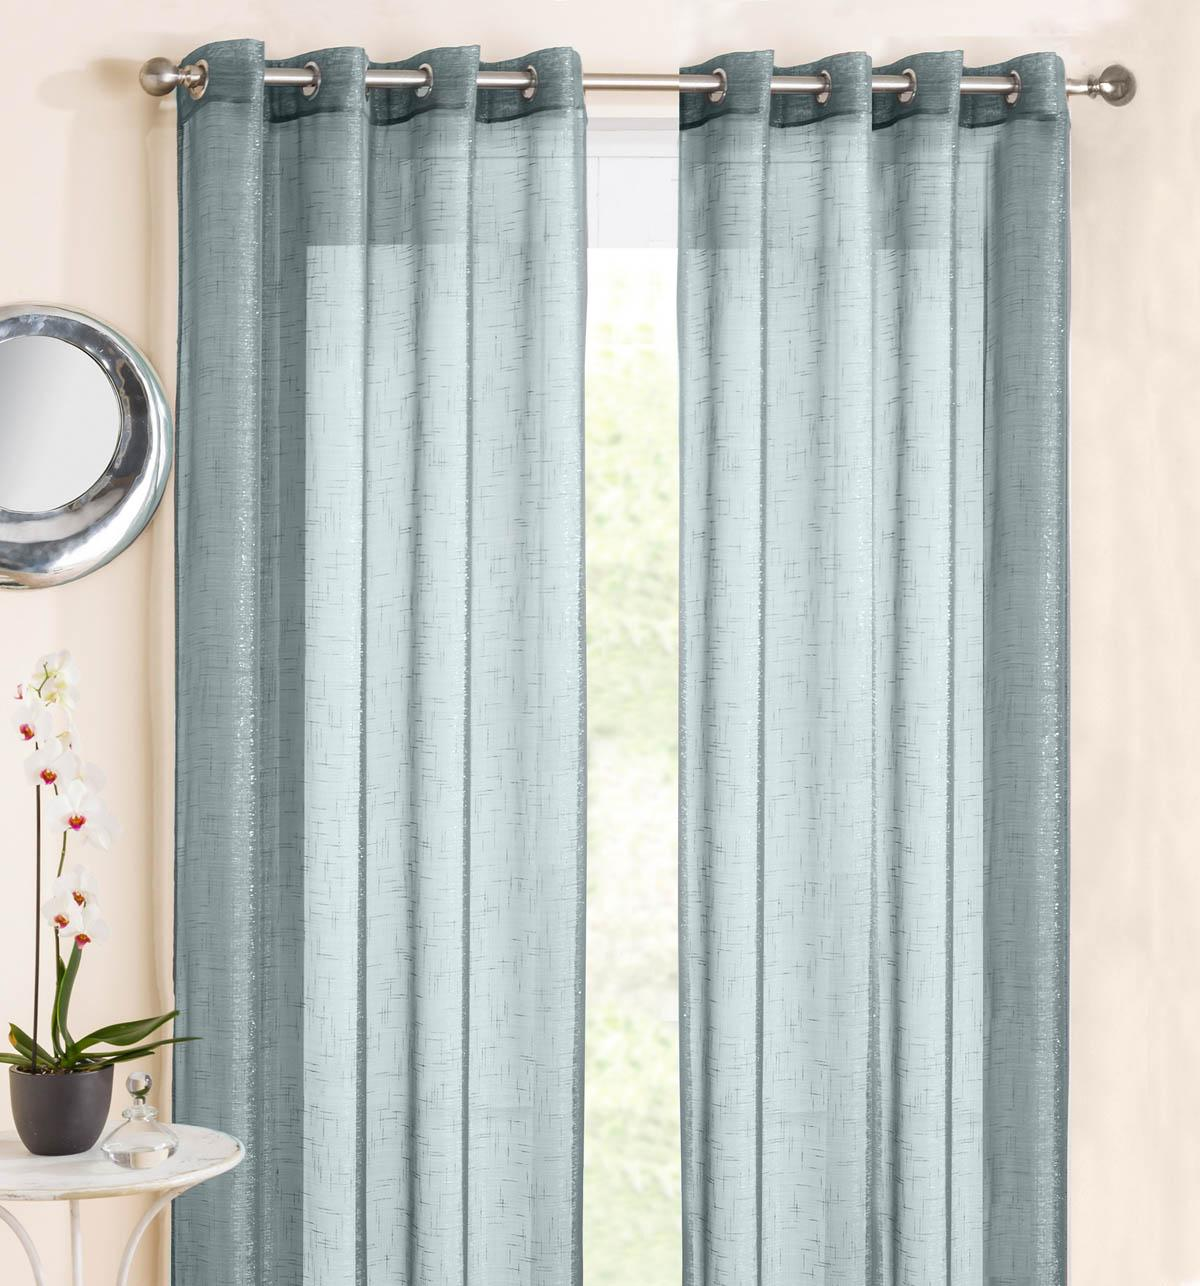 Voile curtain panel brown cheap green curtain voile uk delivery - Marrakesh Eyelet Voile Panel